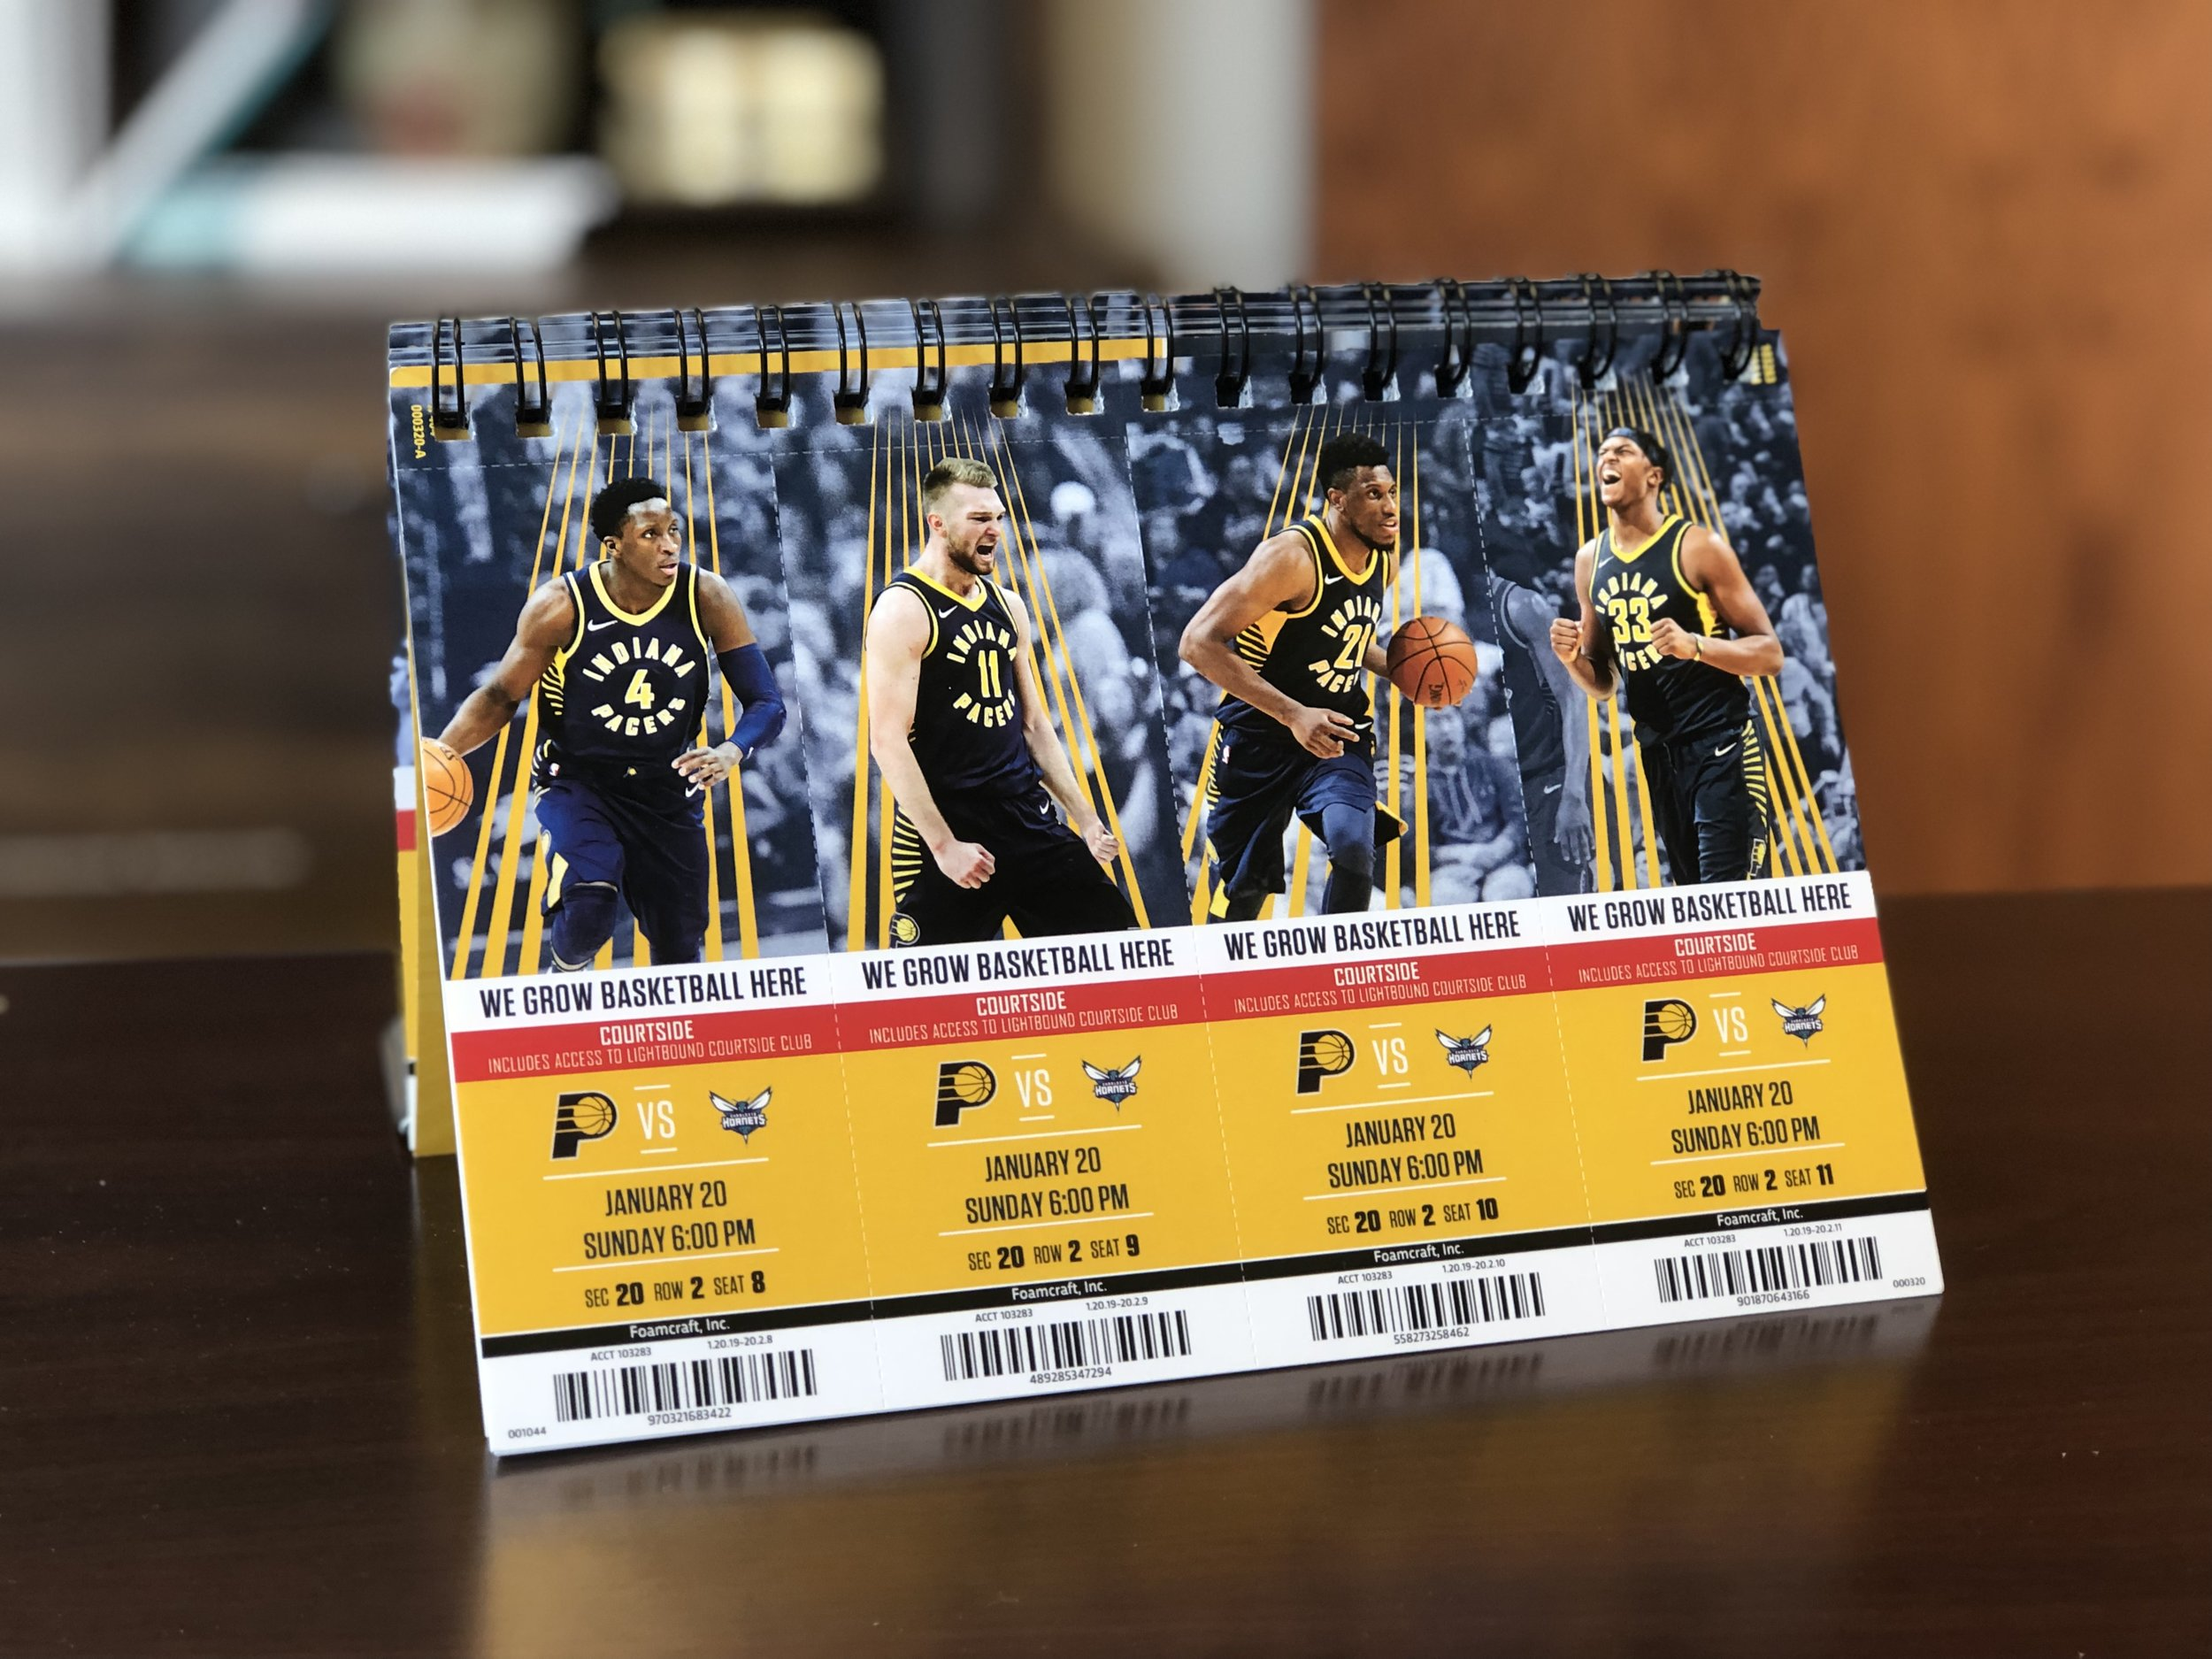 Enter to win four front-row tickets to the Indiana Pacers game on January 20th!